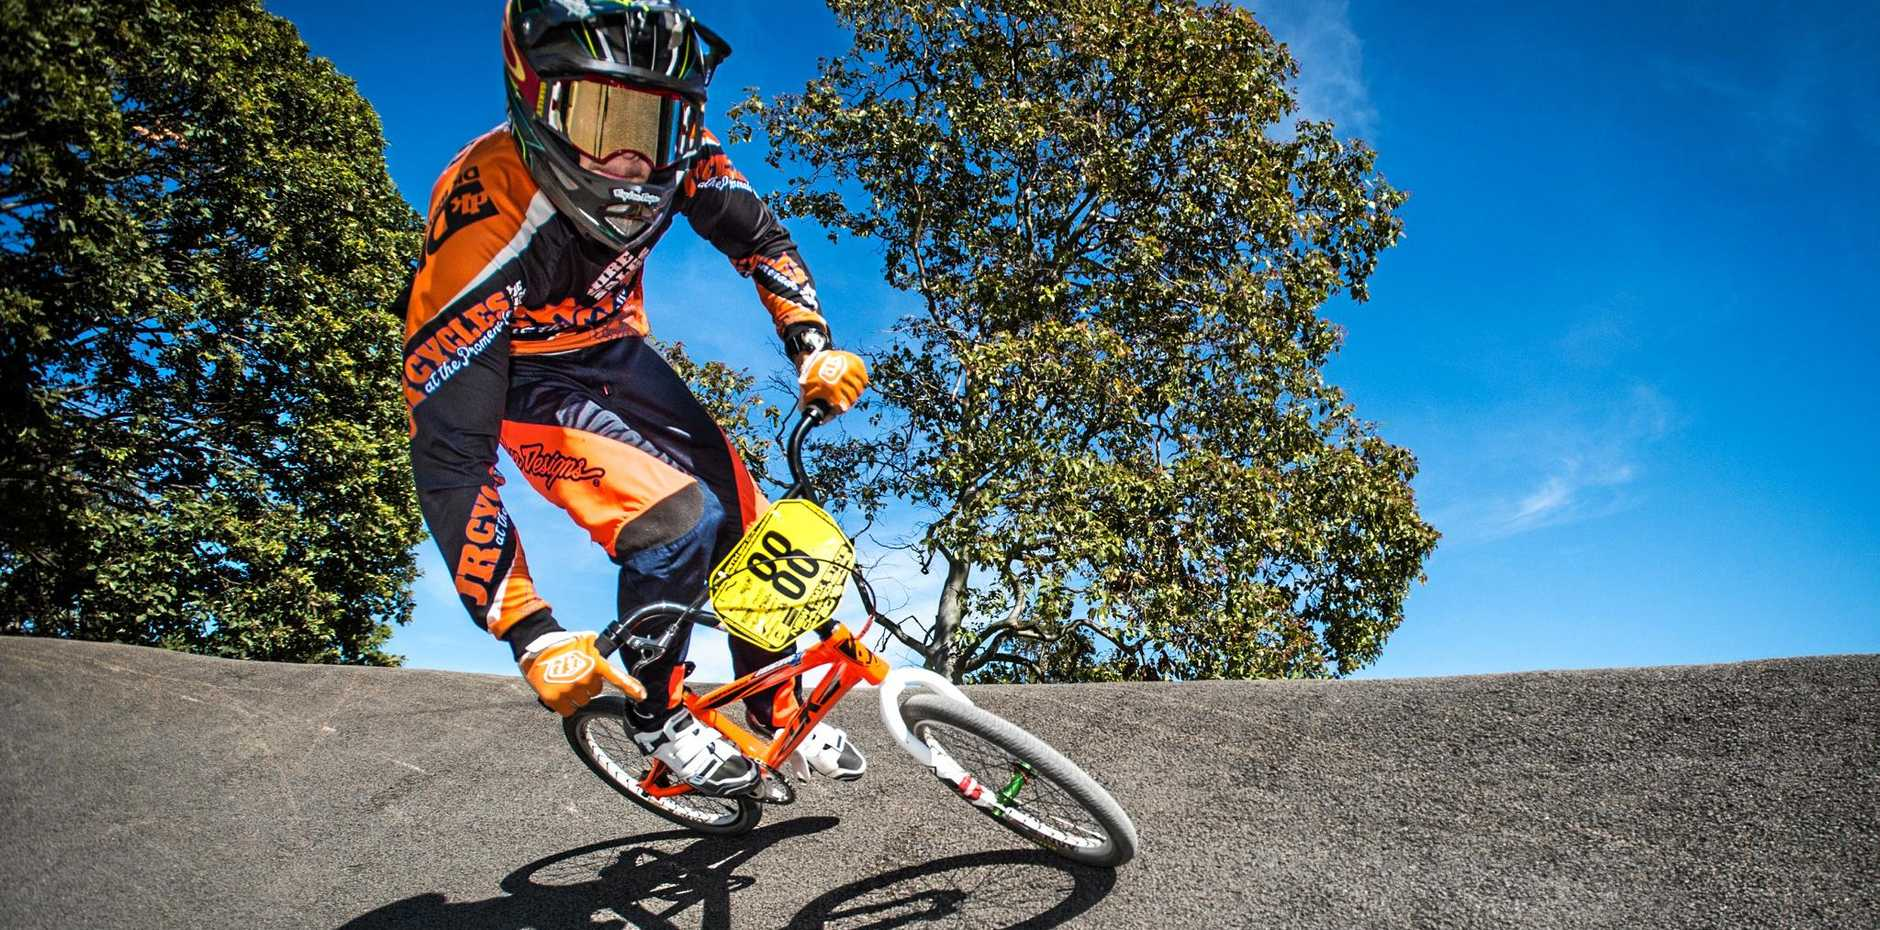 Kye Reid takes off on Friday for the BMX world championships.